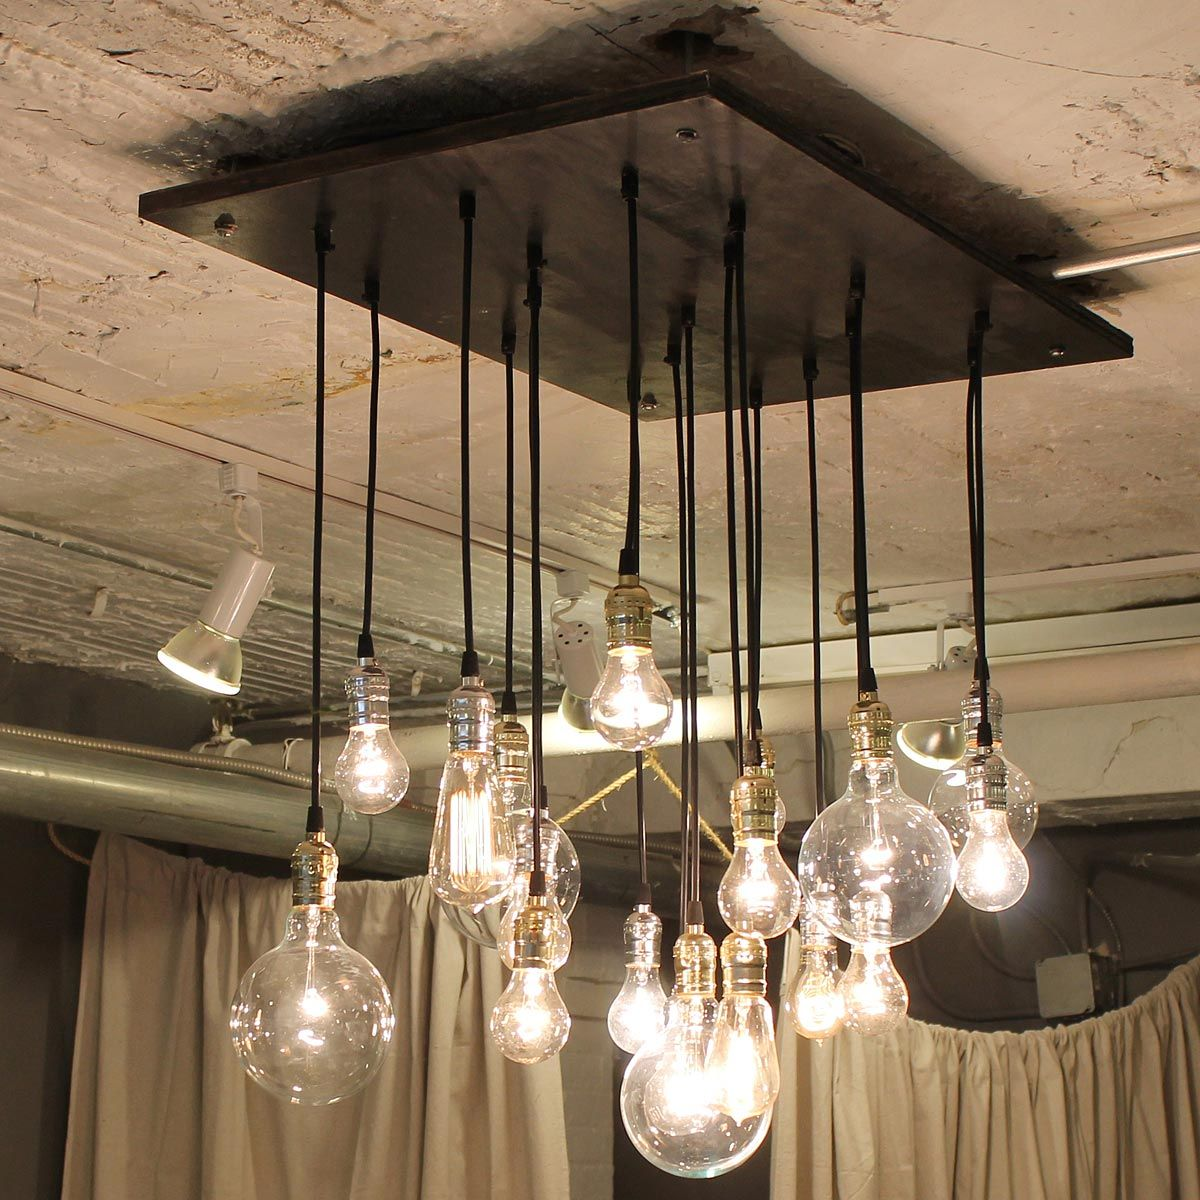 Industrial Style Lighting Industrial Chandelier Edison Bulb Industrial Lighting